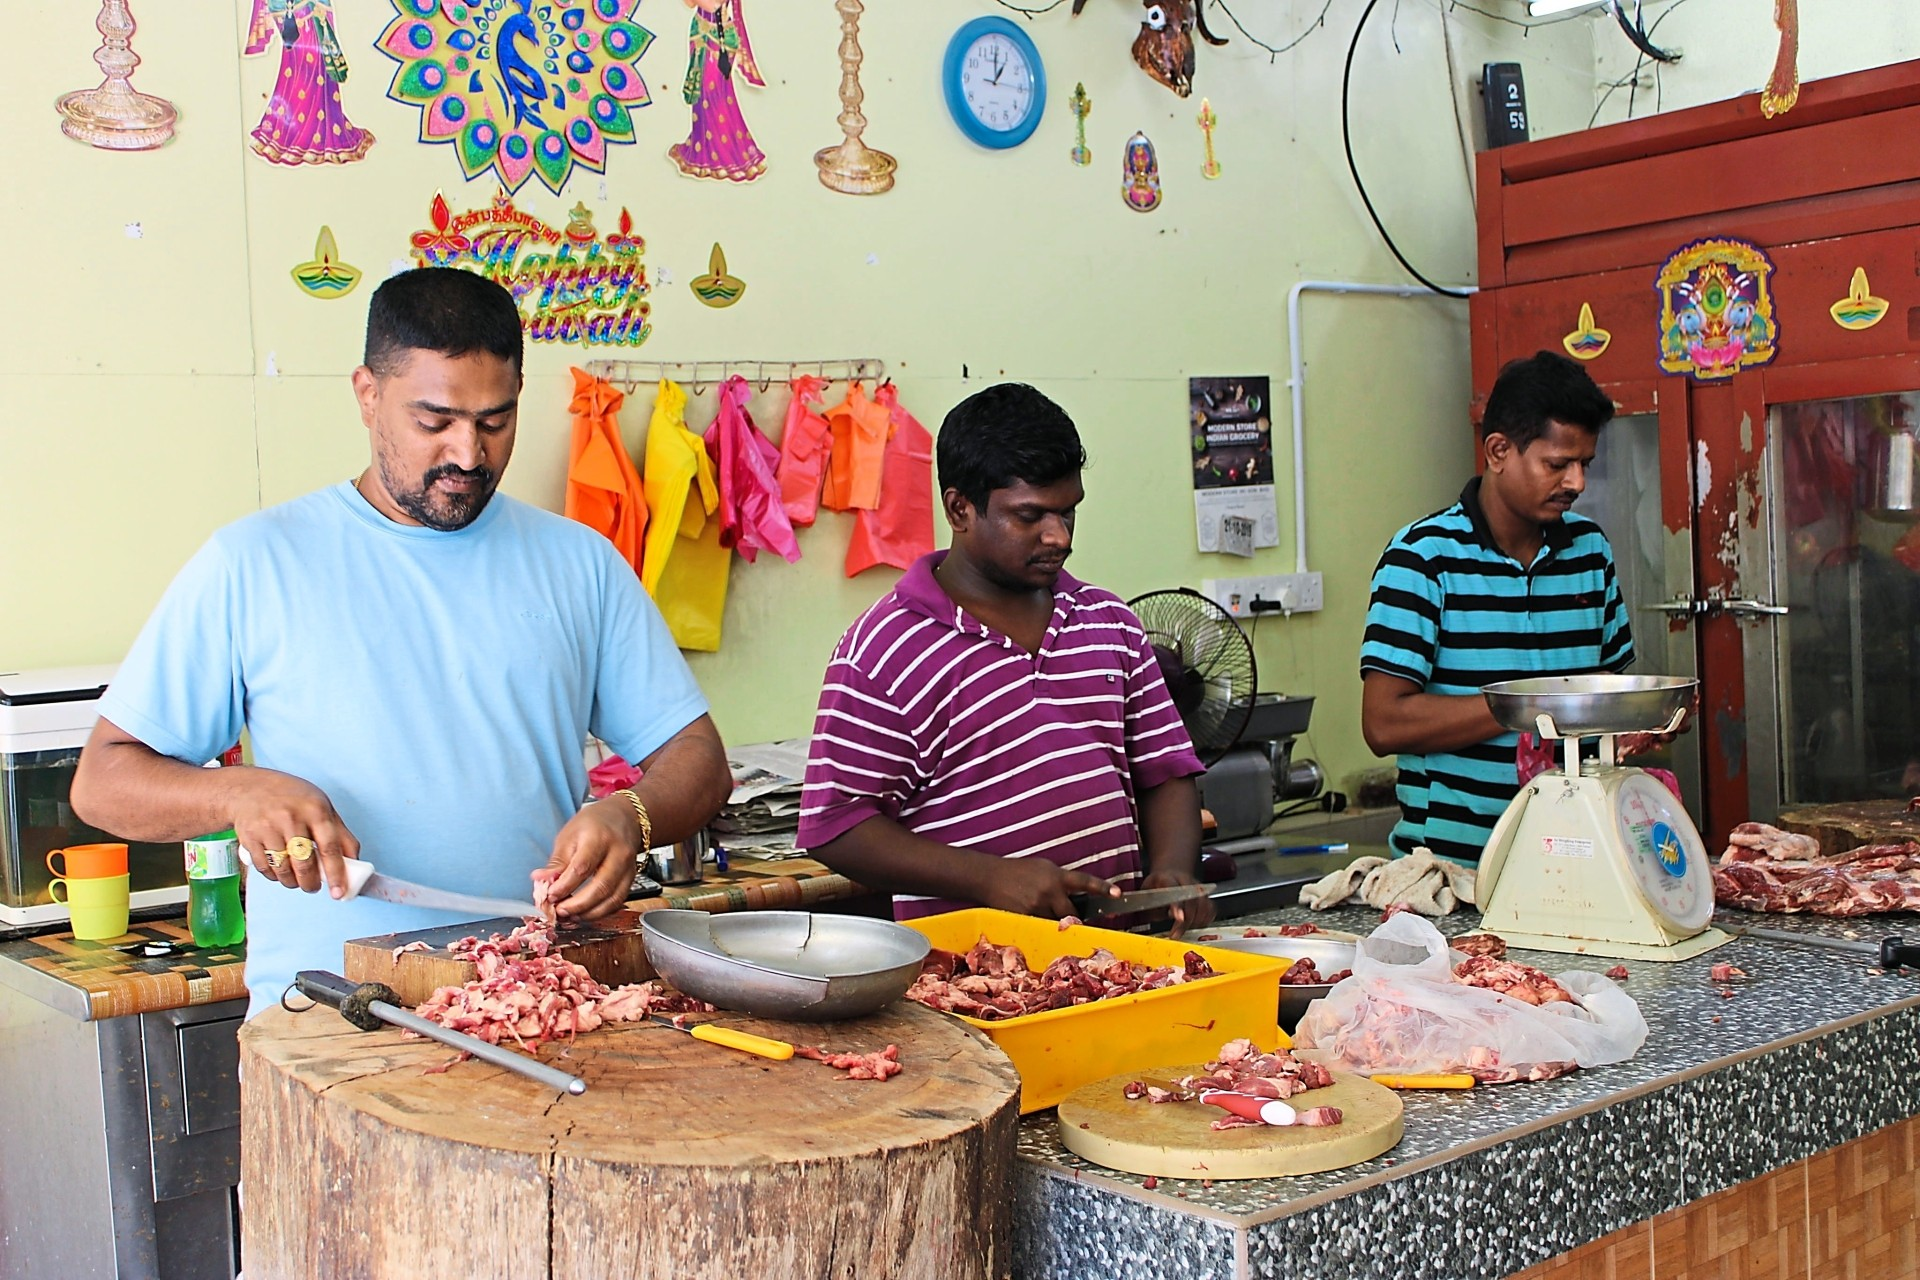 Purusuthaman (left) chopping mutton for customers alongside workers, Muninathan Manthaiyan, 29 (second from left) and Sevugamoorthi at Papa Mutton Shop in Brickfields.